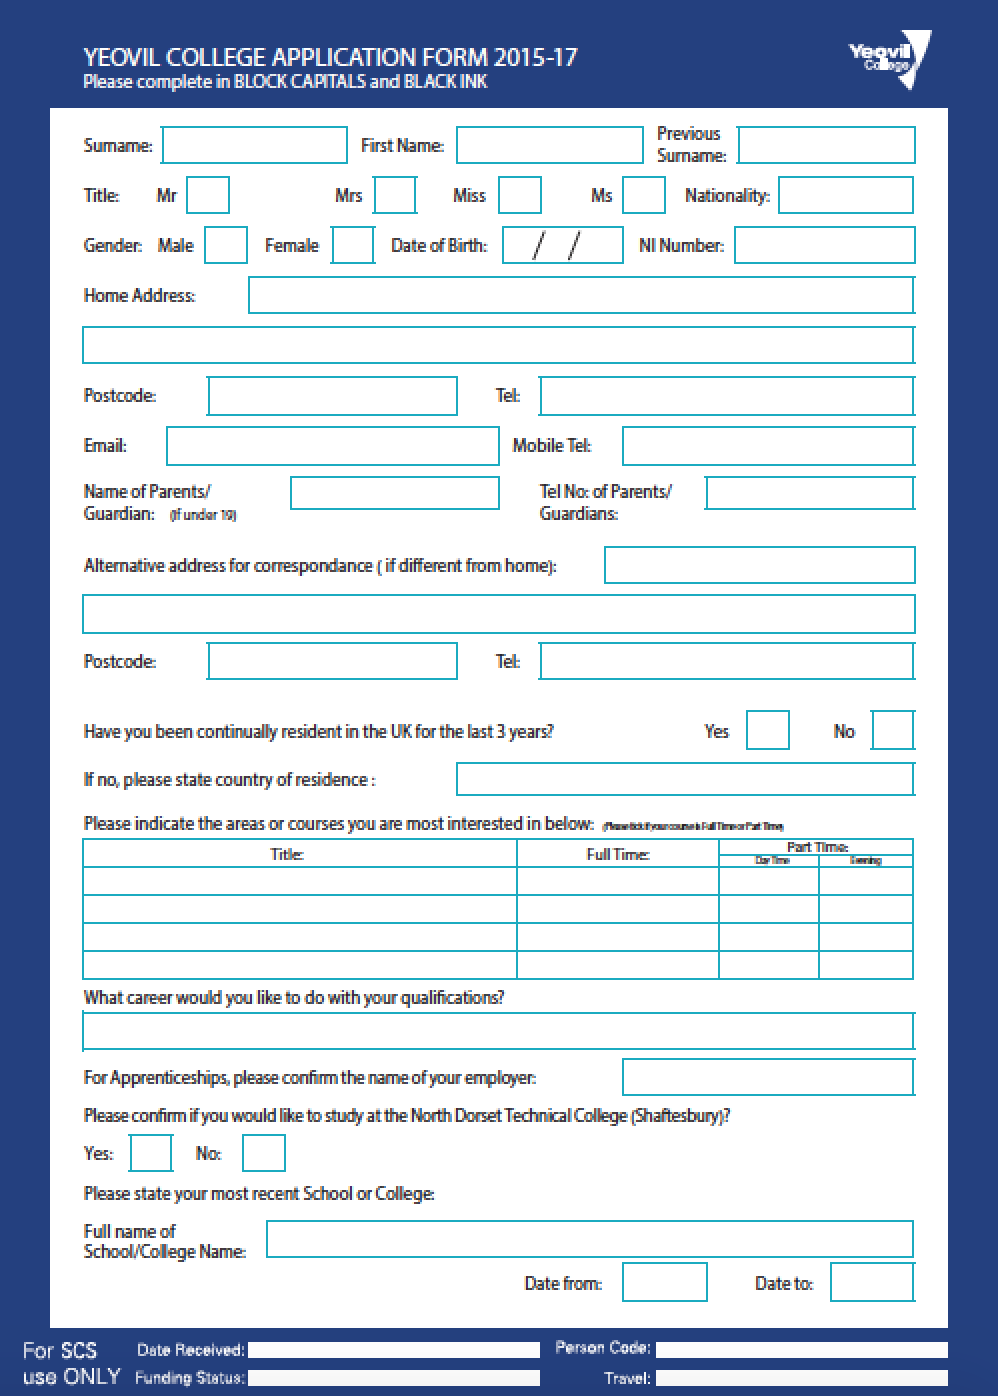 Yeovil College  Application Form  Solicitud